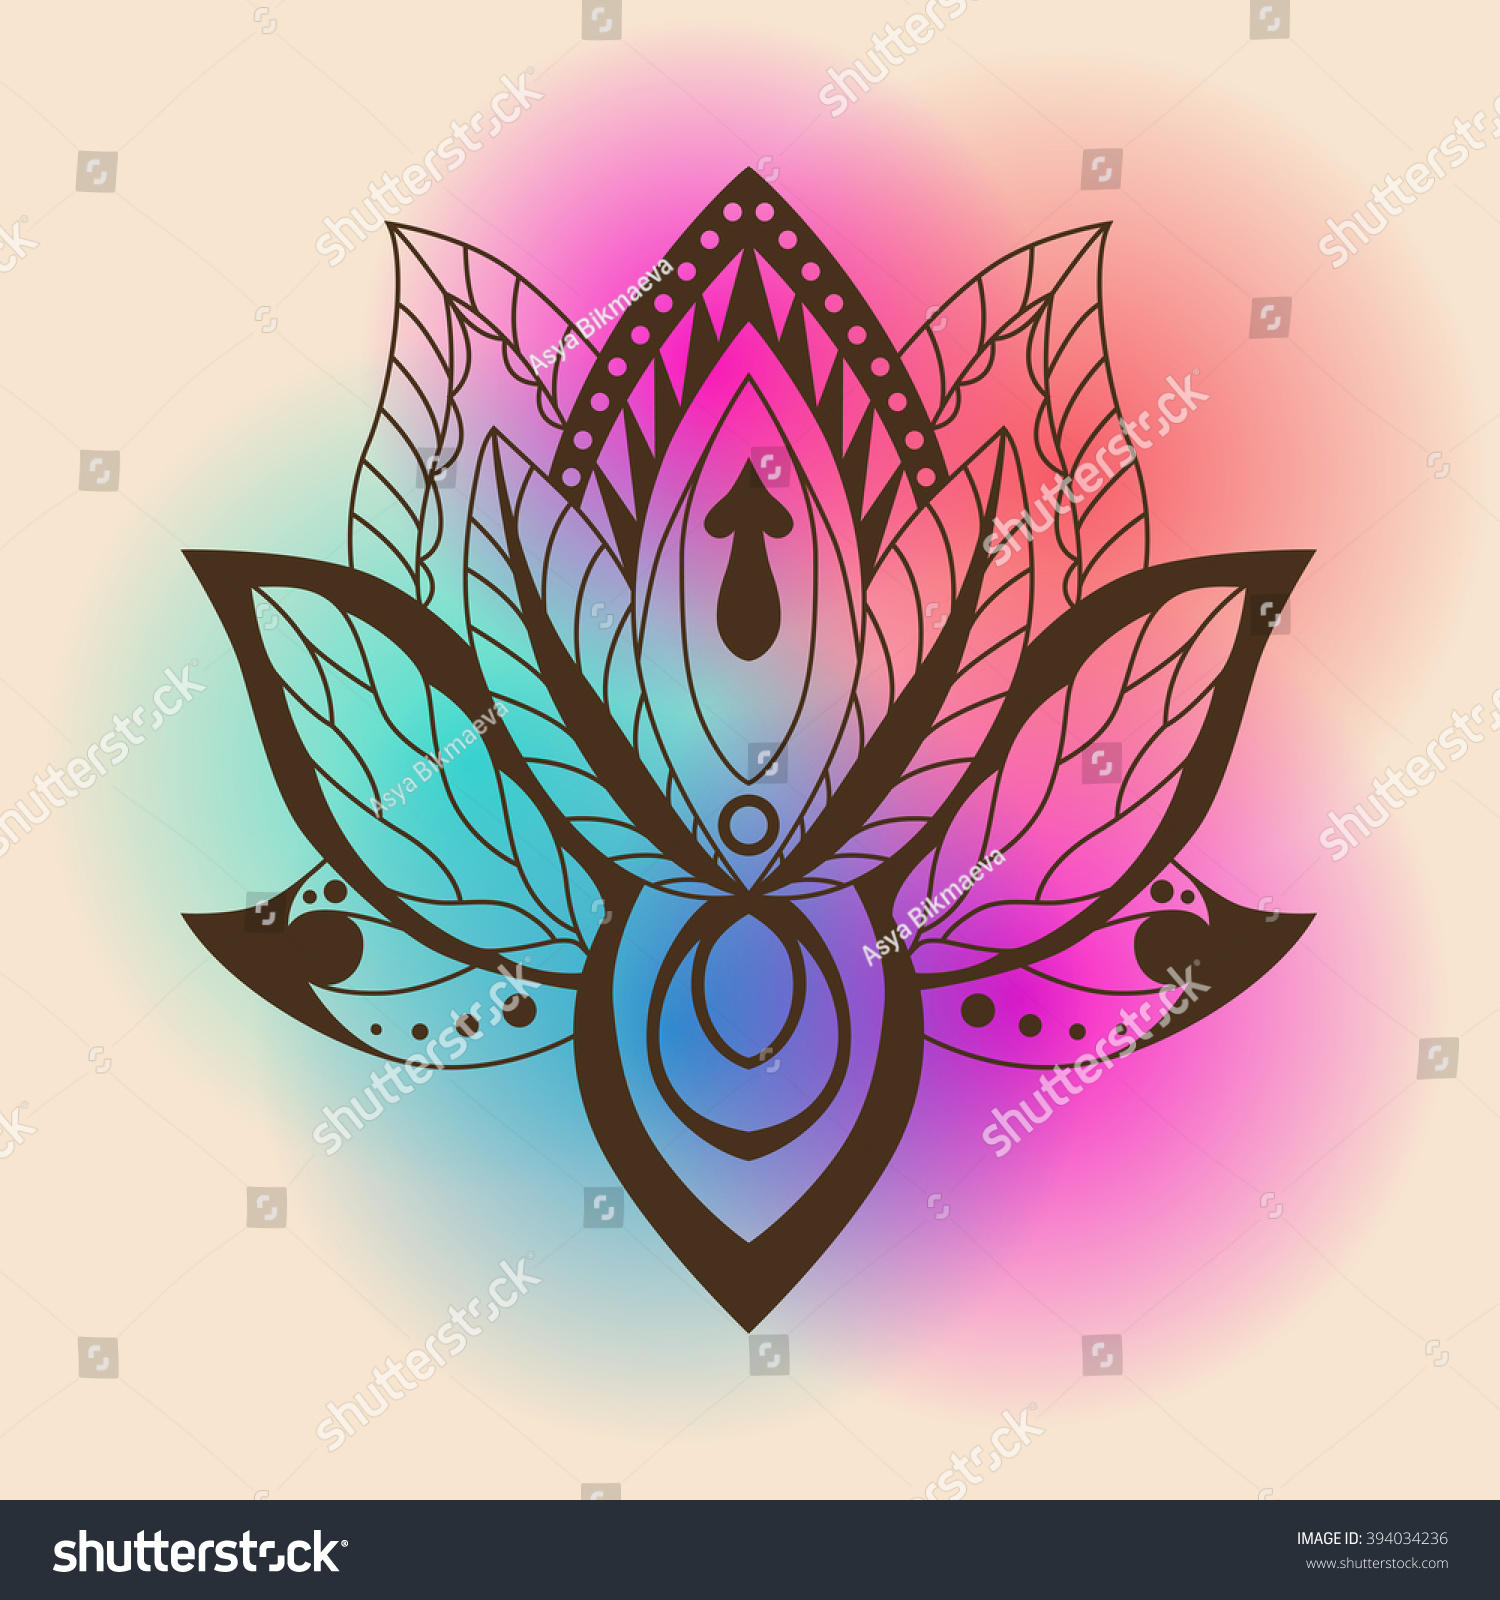 Royalty Free Lotus Mandala On A Bright Background 394034236 Stock